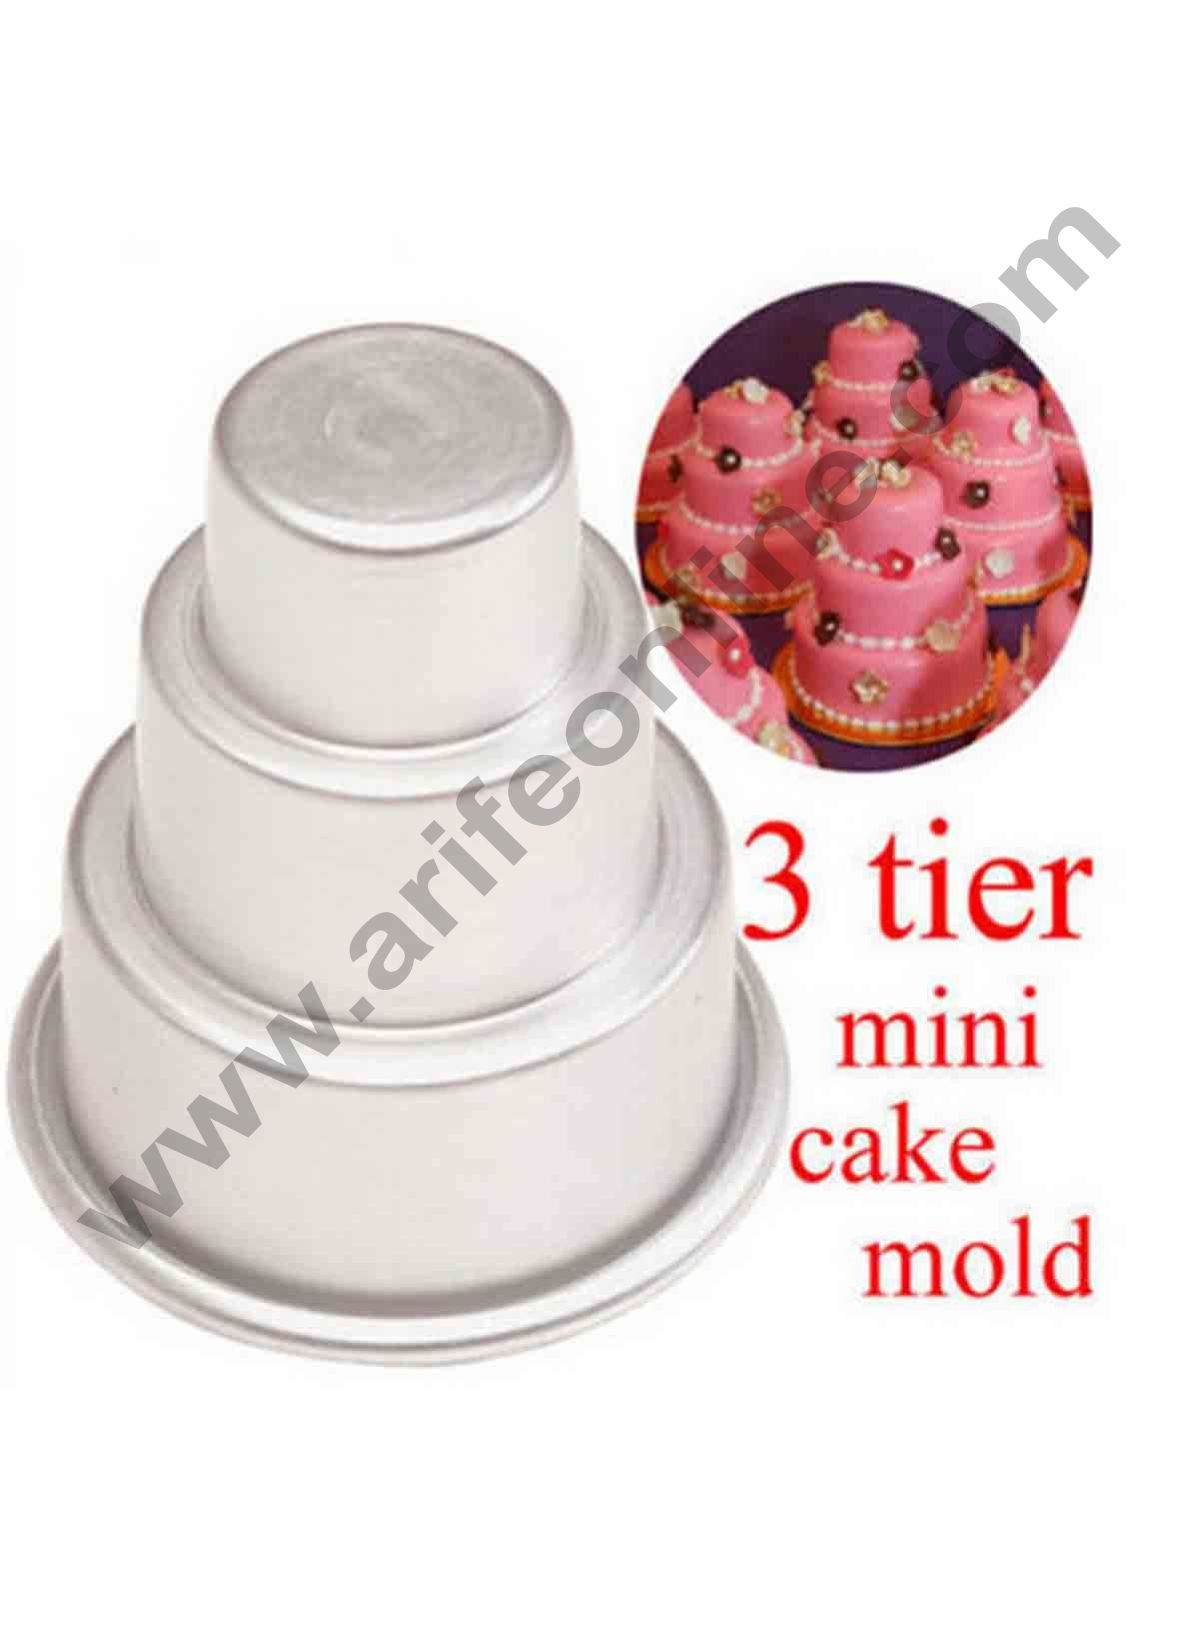 Cake Decor 1Pcs New Cake Trays Mini 3 Tier Cake Pan Tins Cupcake Pudding Pizza Molds Home Birthday Party Decors Supplies